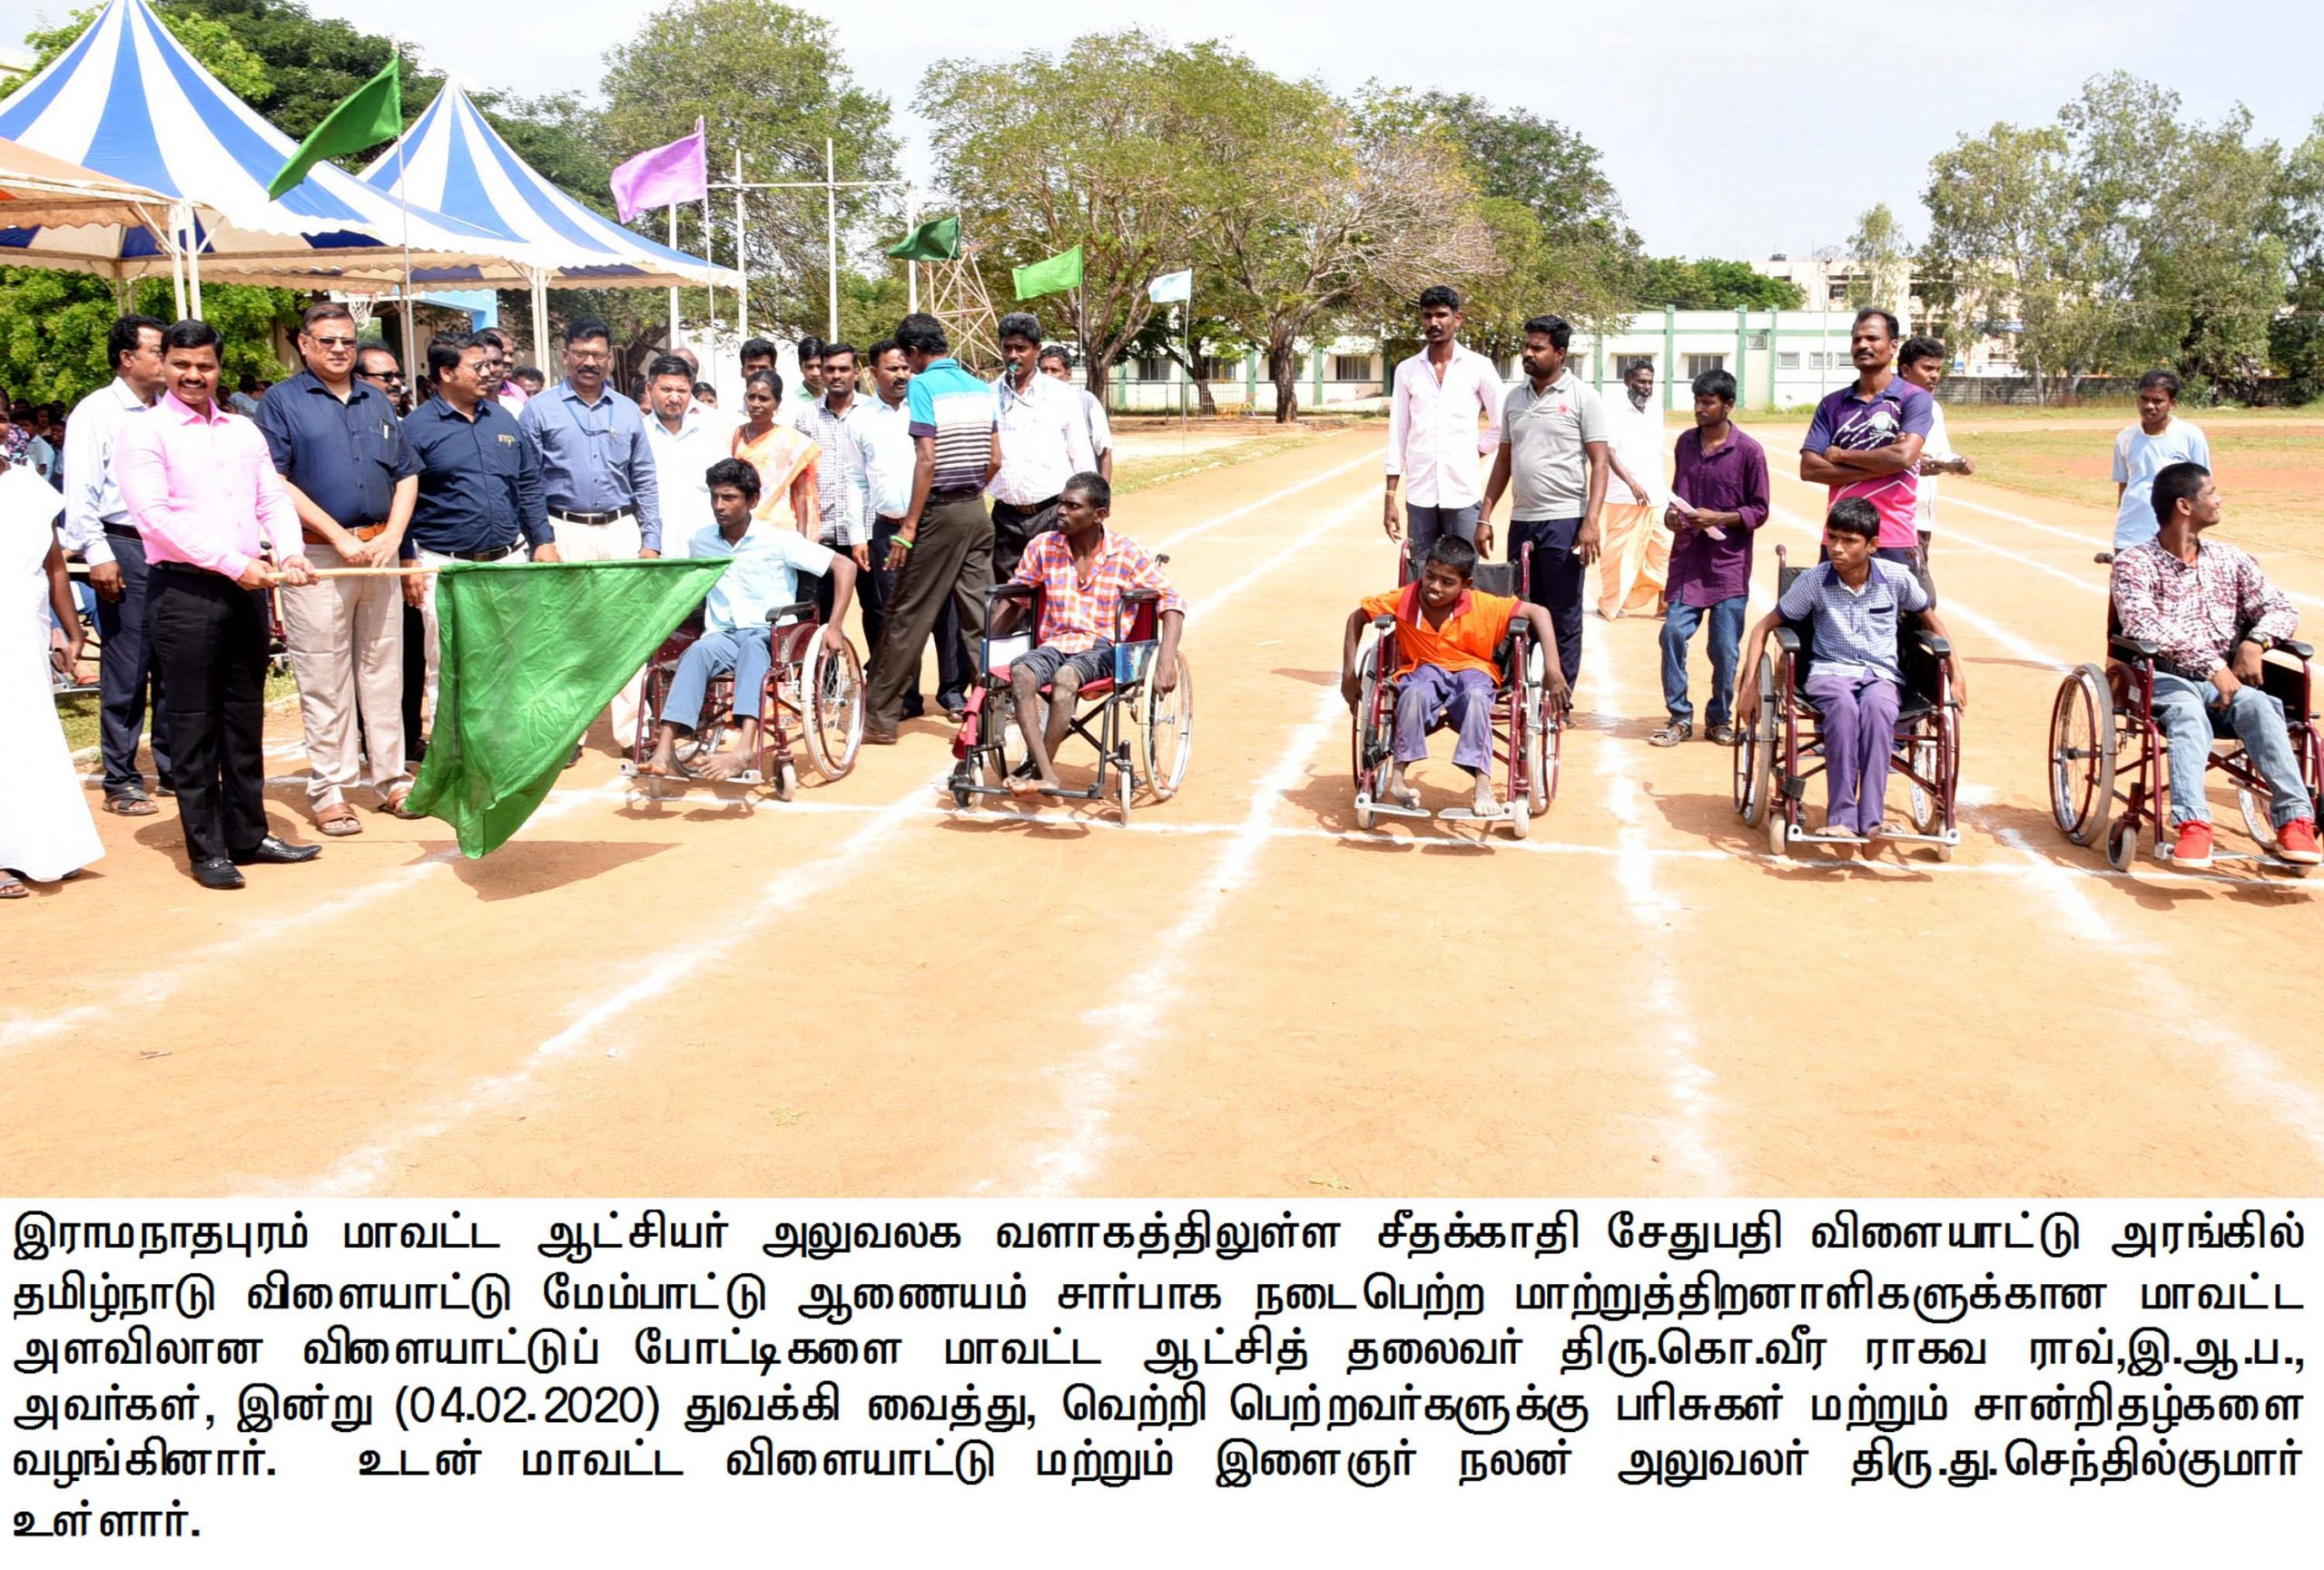 DIFFERENTLY ABLED CHILDREN_SPORTS EVENT_04/02/2020